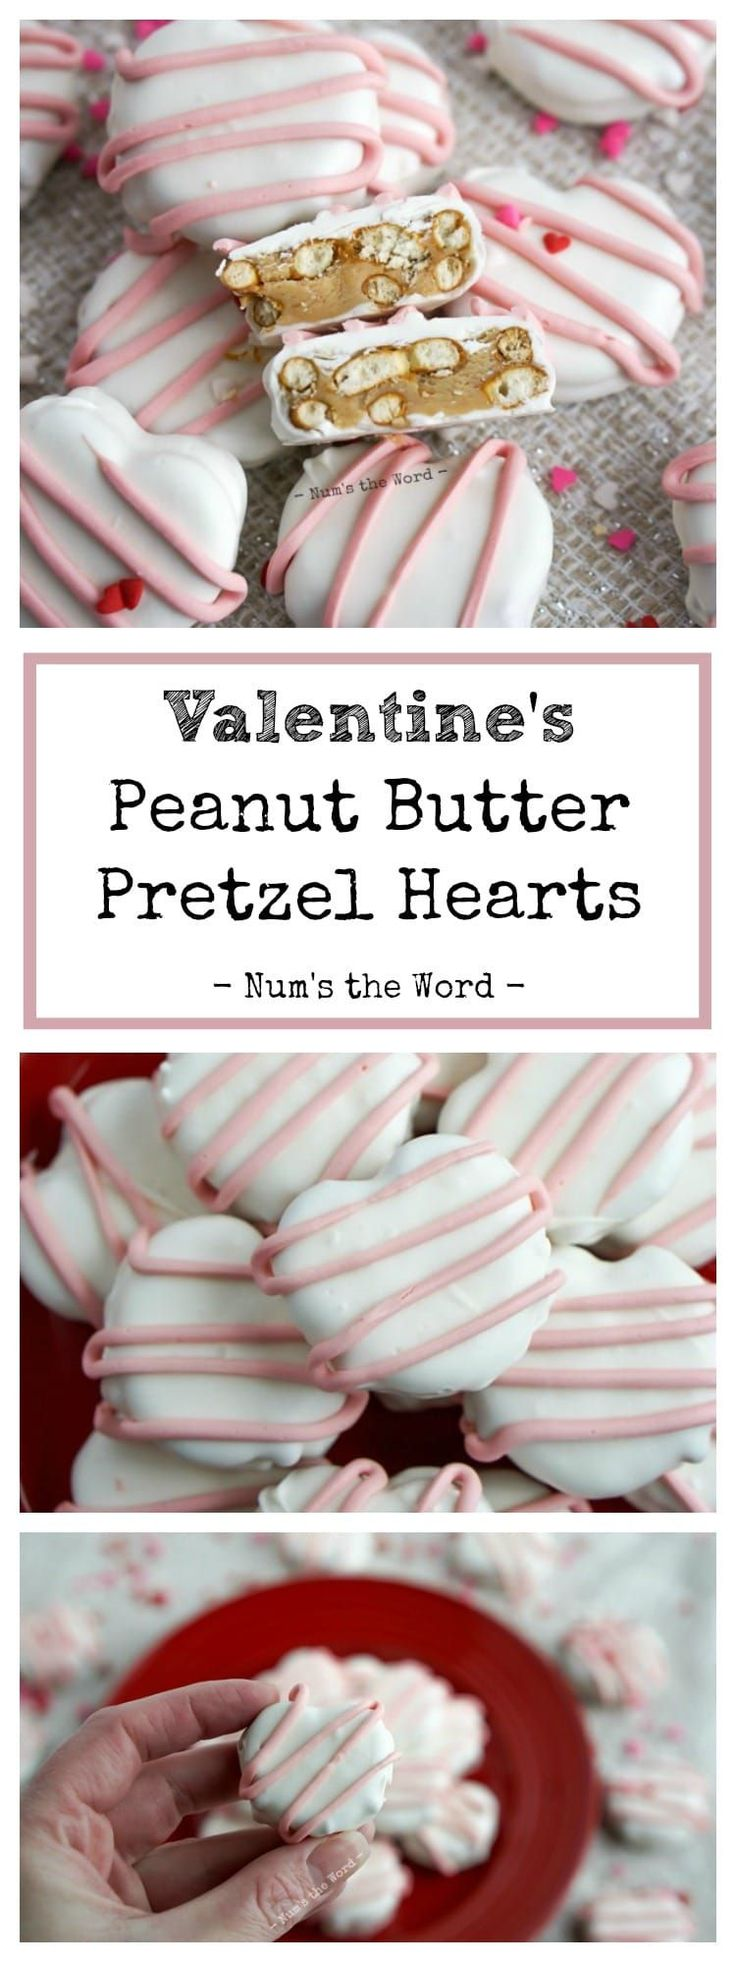 These Valentine's Peanut Butter Pretzel Hearts are the perfect treat for any Peanut Butter Cup lover! Two pretzels with a peanut butter cup mixture between them and dipped in chocolate make for a very tasty treat anyone would be lucky enough to get. #valentinesday #dessert #chocolate #peanutbutter #peanutbuttercup #pretzel #peanutbutterpretzels #whitechocolate #pink #pinkchocolate #babyshower #bridalshower #heart #heartshapedfood #valentinesfood #love #recipe #numstheword